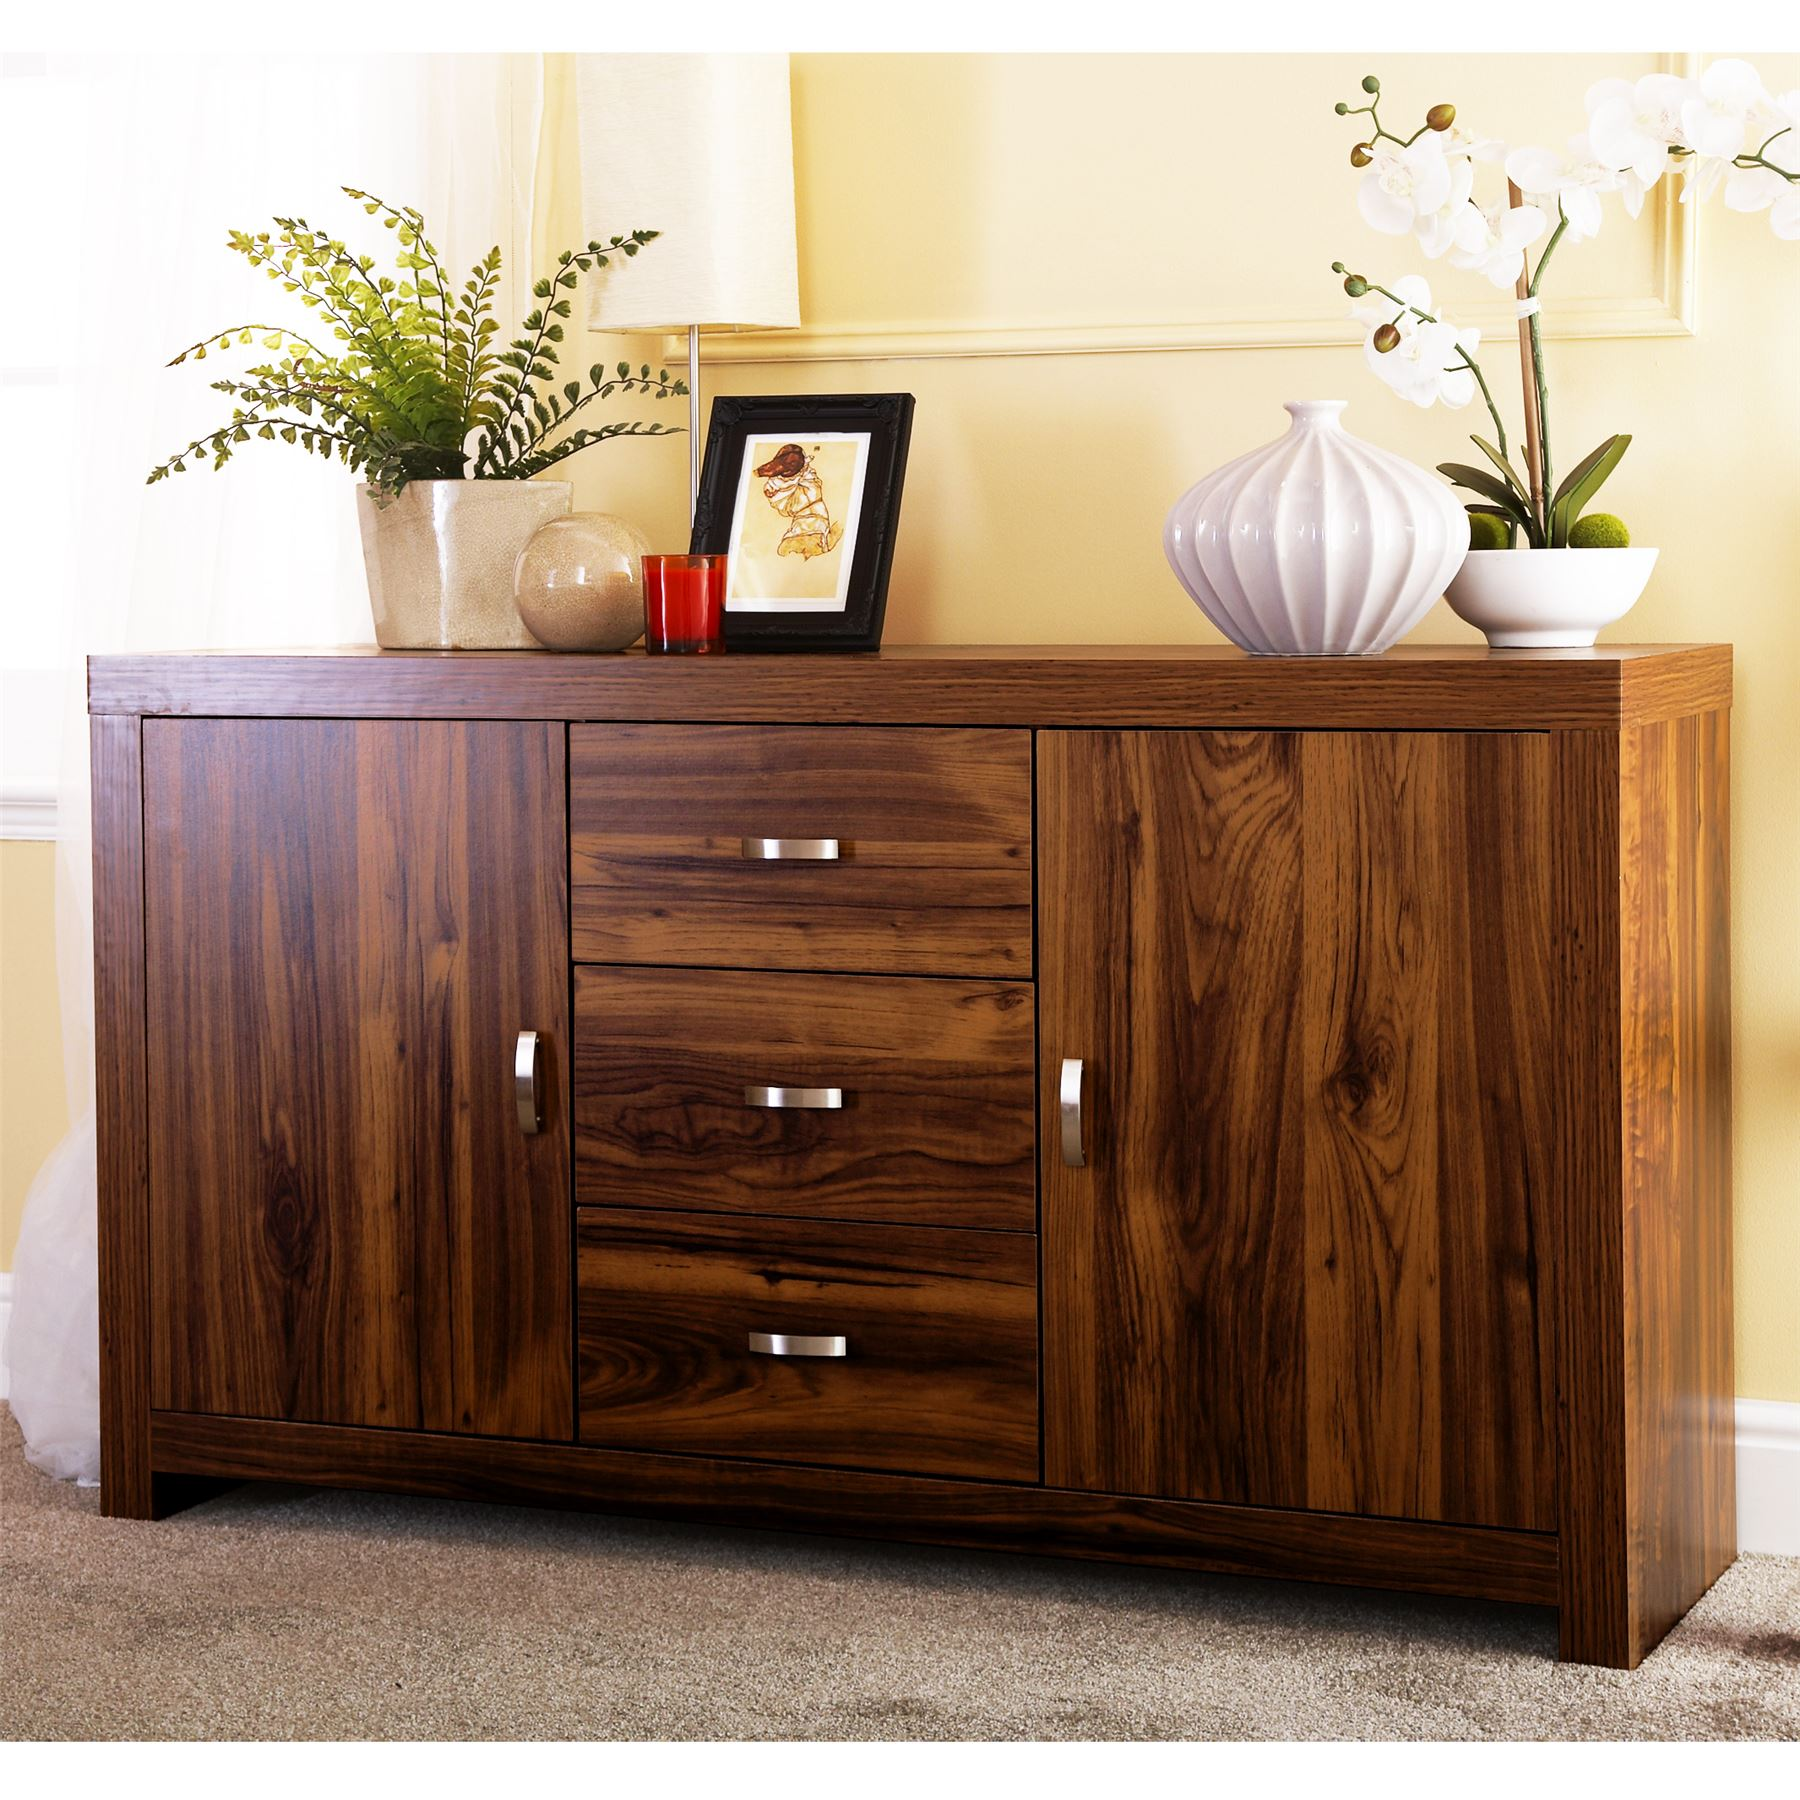 temple sideboard the austen webster sku sometimes under listed also following manufacturer is numbers sliding table door